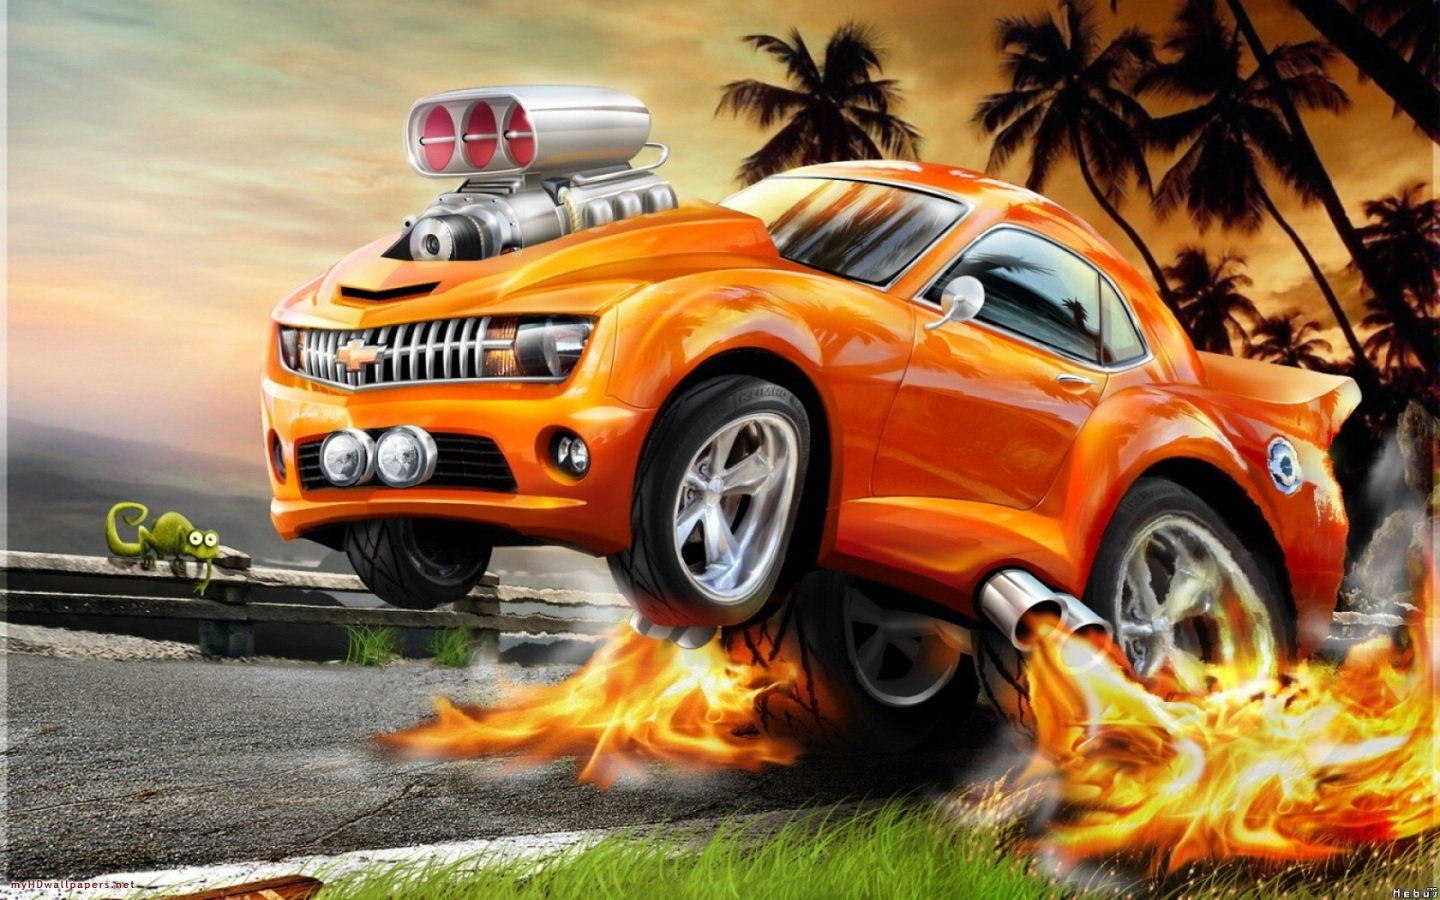 Orange Car With Nos Hd Wallpaper Cars wallpapers hd Photo Shared 1440x900